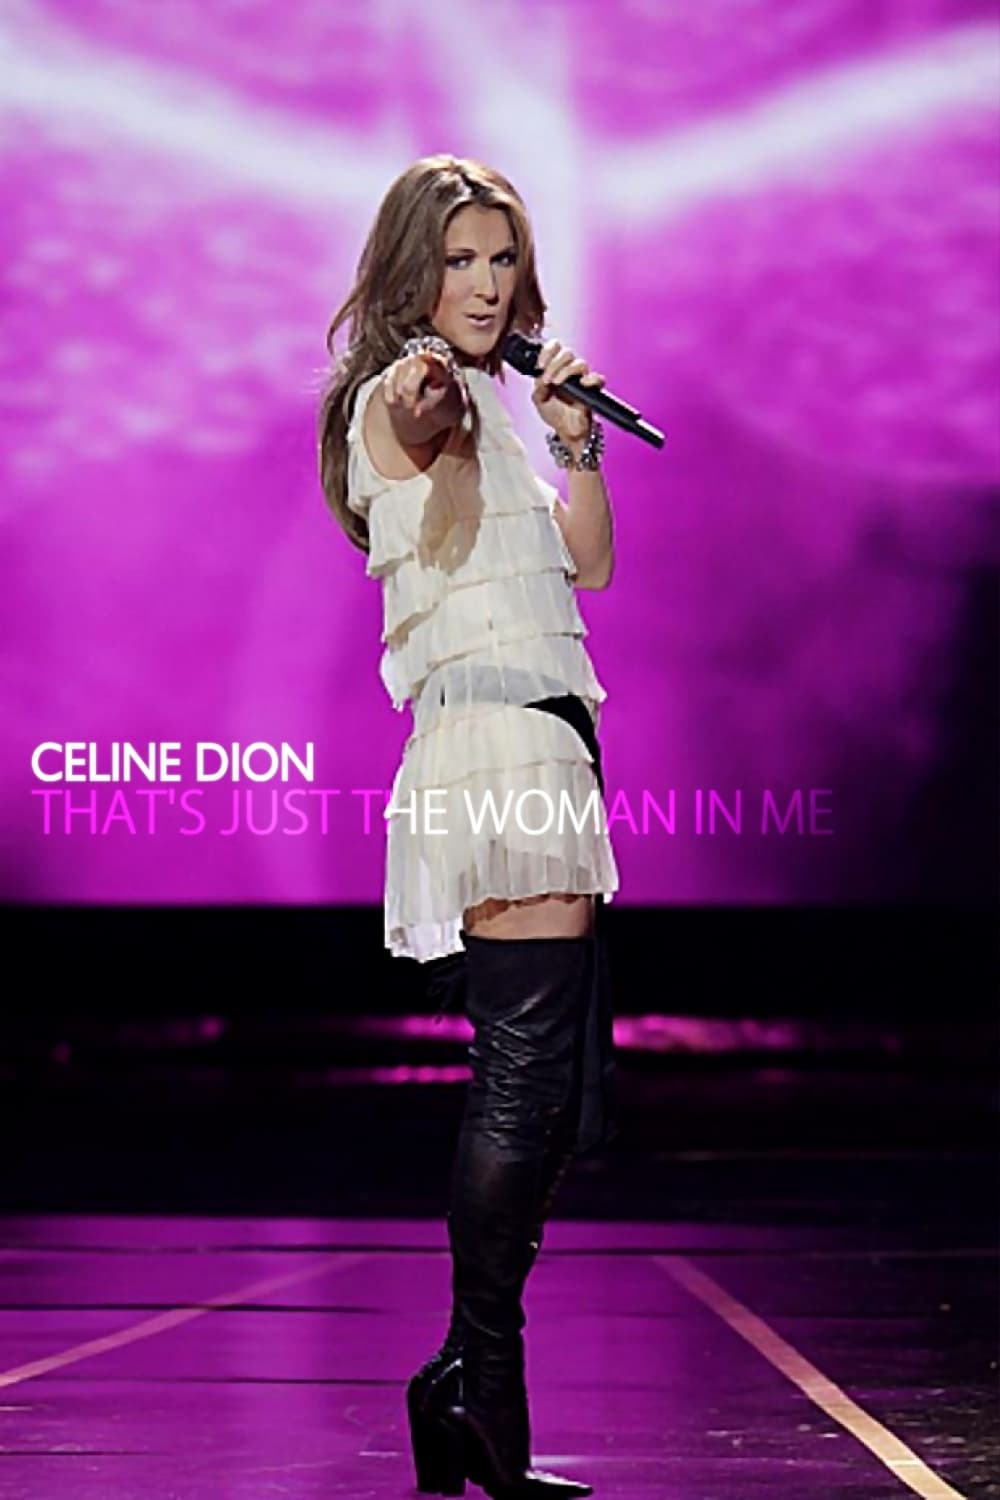 Celine Dion: That's Just The Woman In Me (2008)